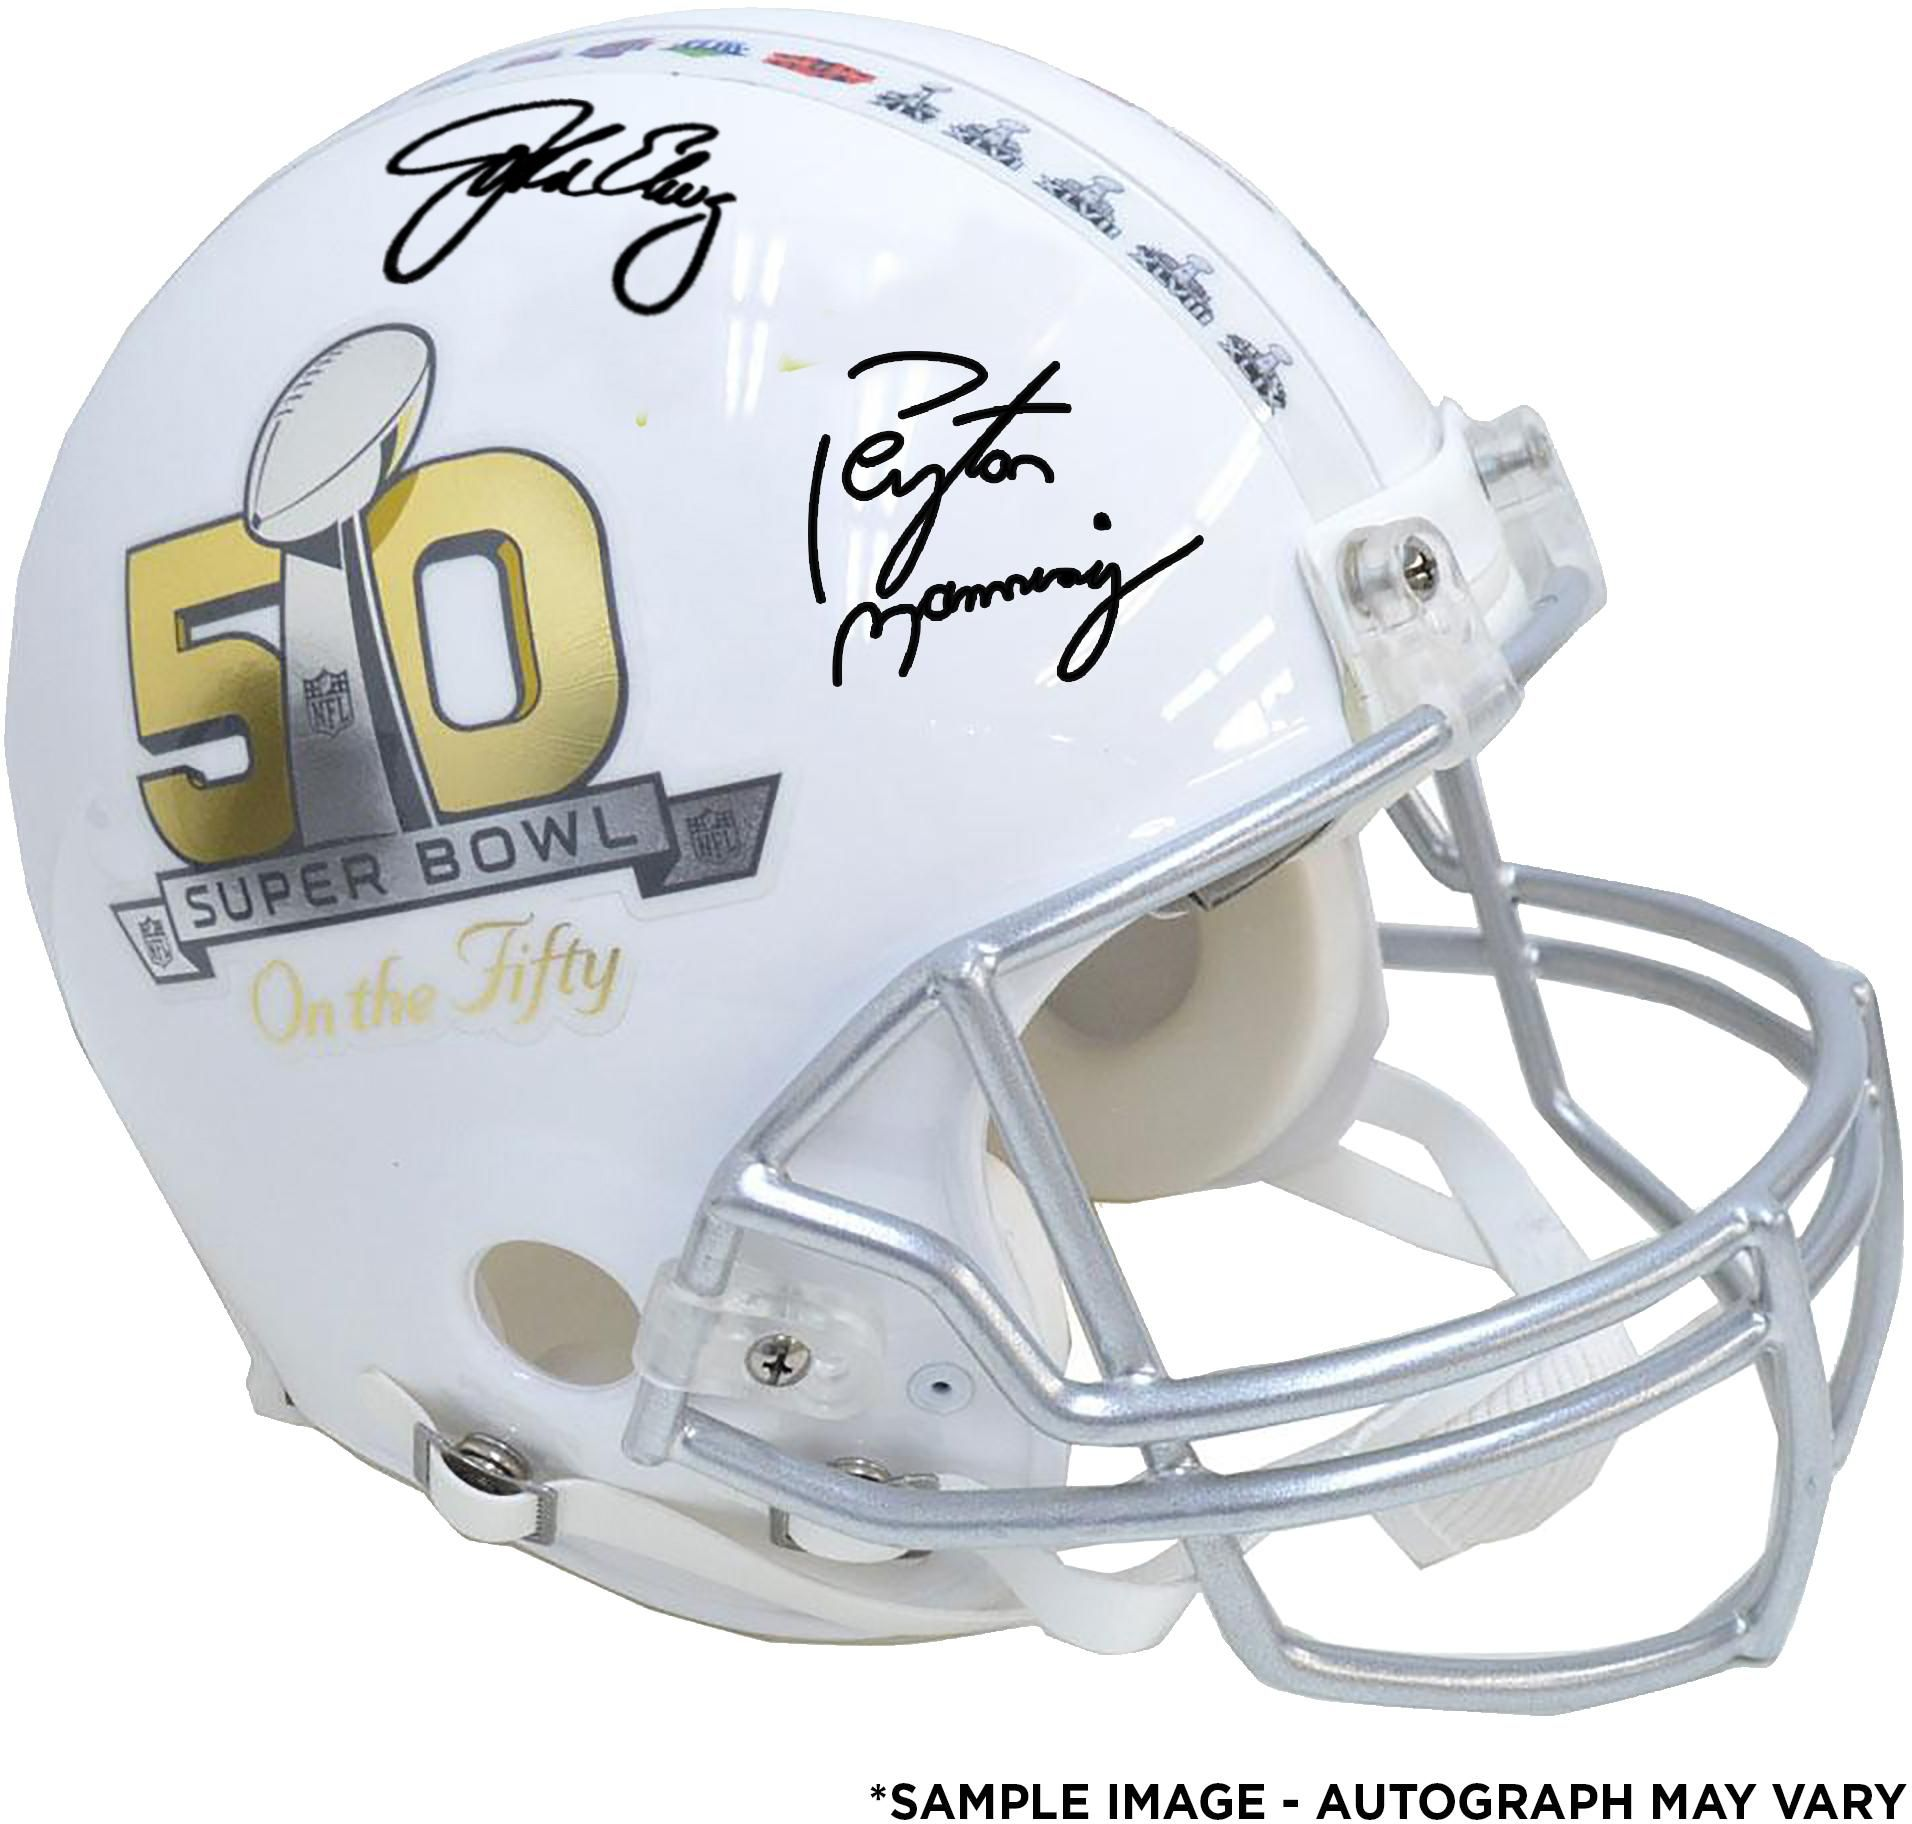 Peyton Manning   John Elway Autographed Riddell Super Bowl 50 On The Fifty Pro  Helmet cf647d3de